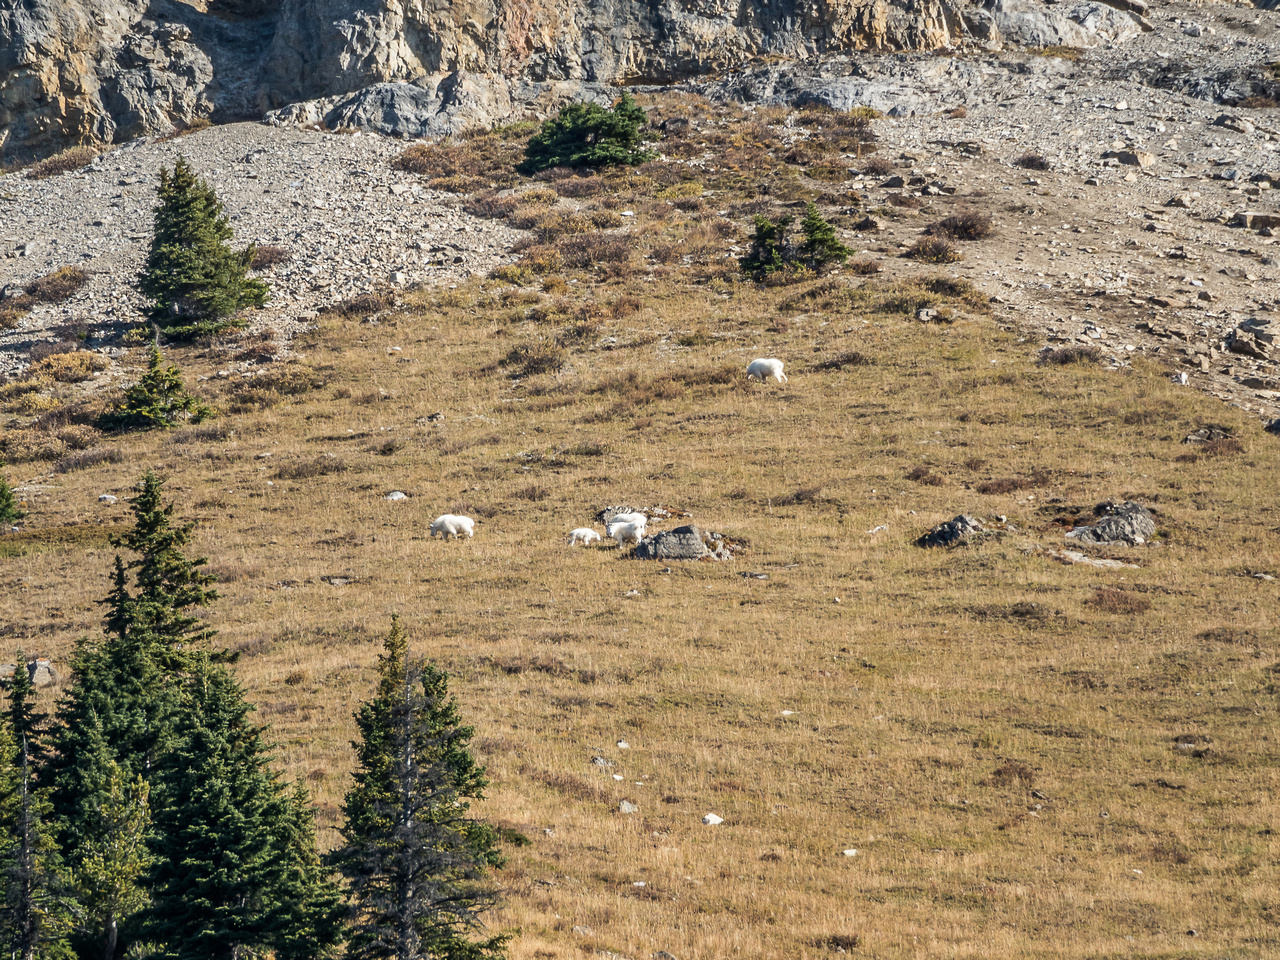 There they are! Happily grazing high above the high line trail on the SW slopes of Golden Mountain.